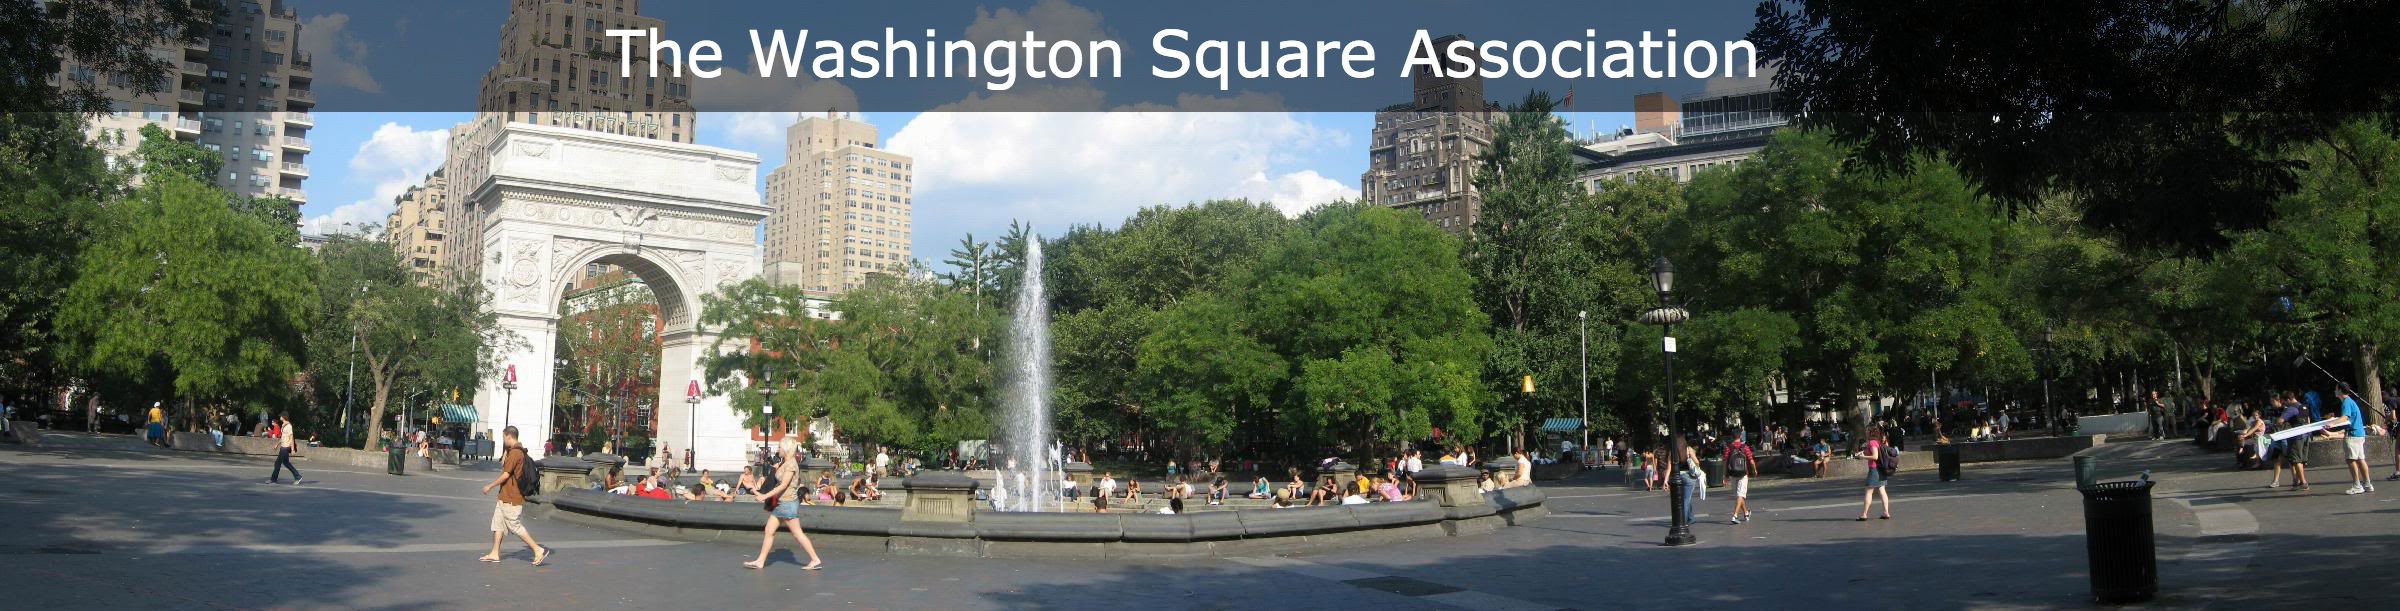 Washington Square Park 4 Smaller Font